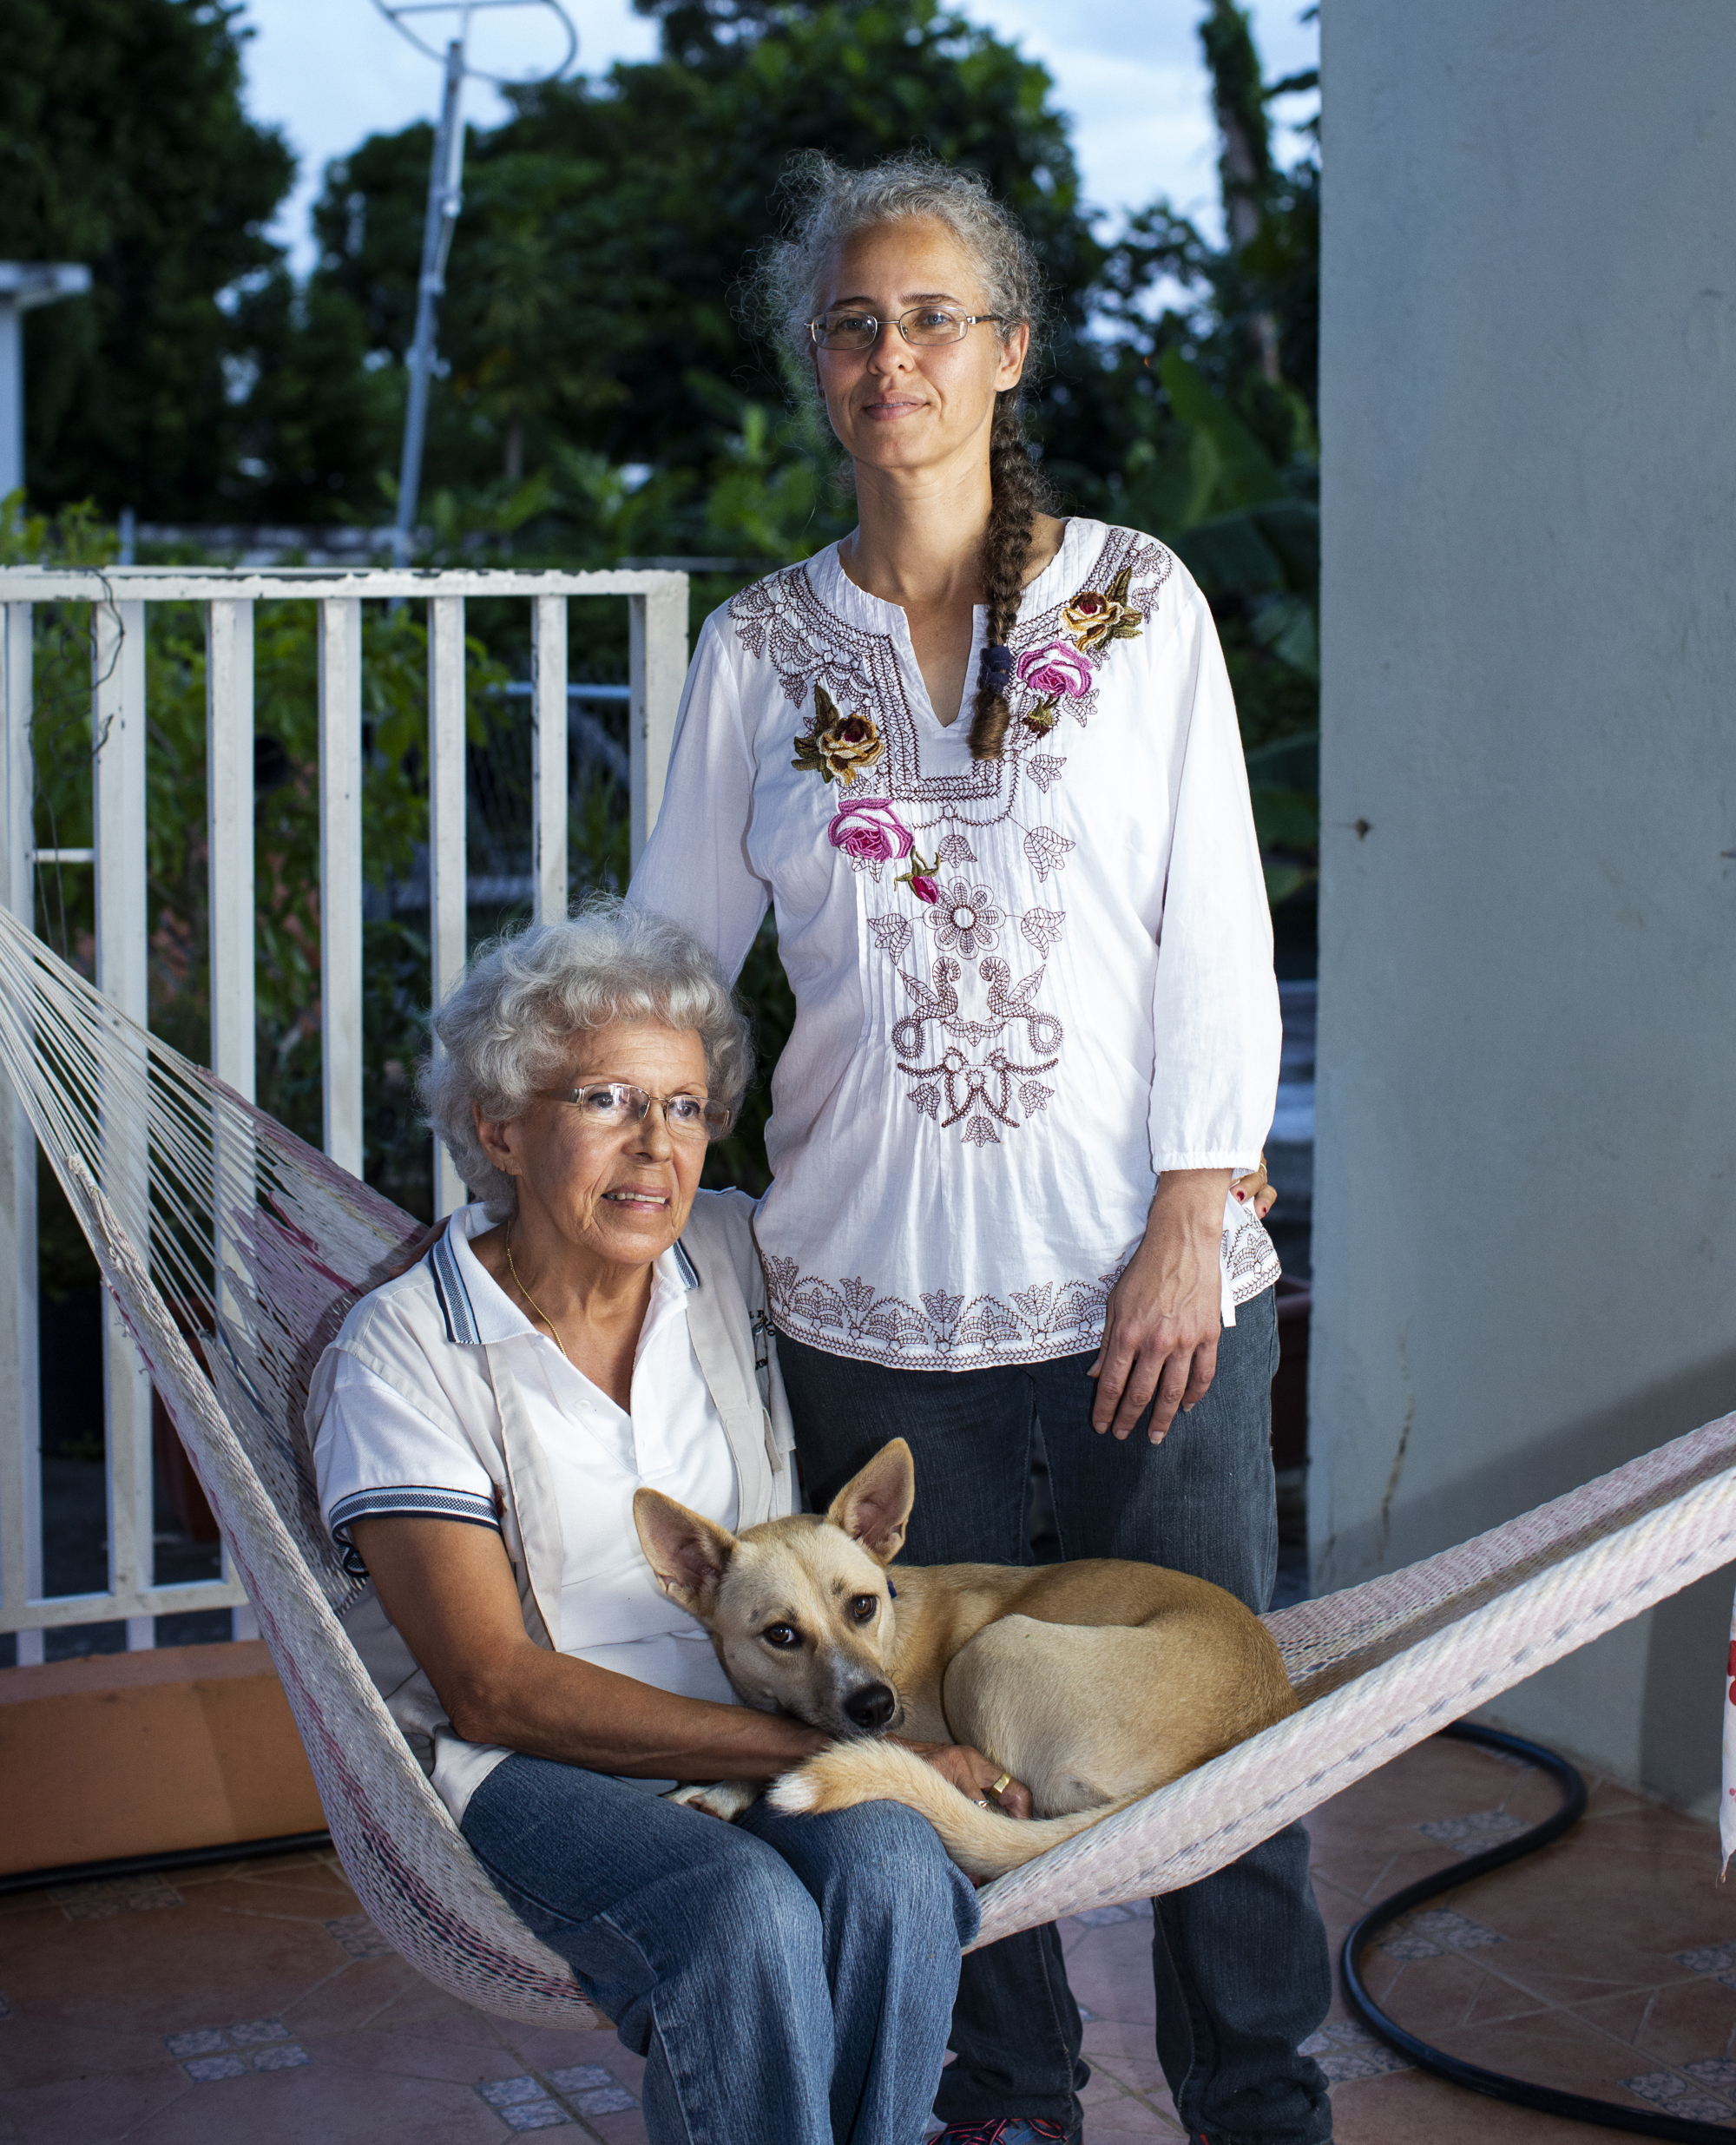 Alana Feldman Soler stands on the porch as her mother and dog rest on a hammock.